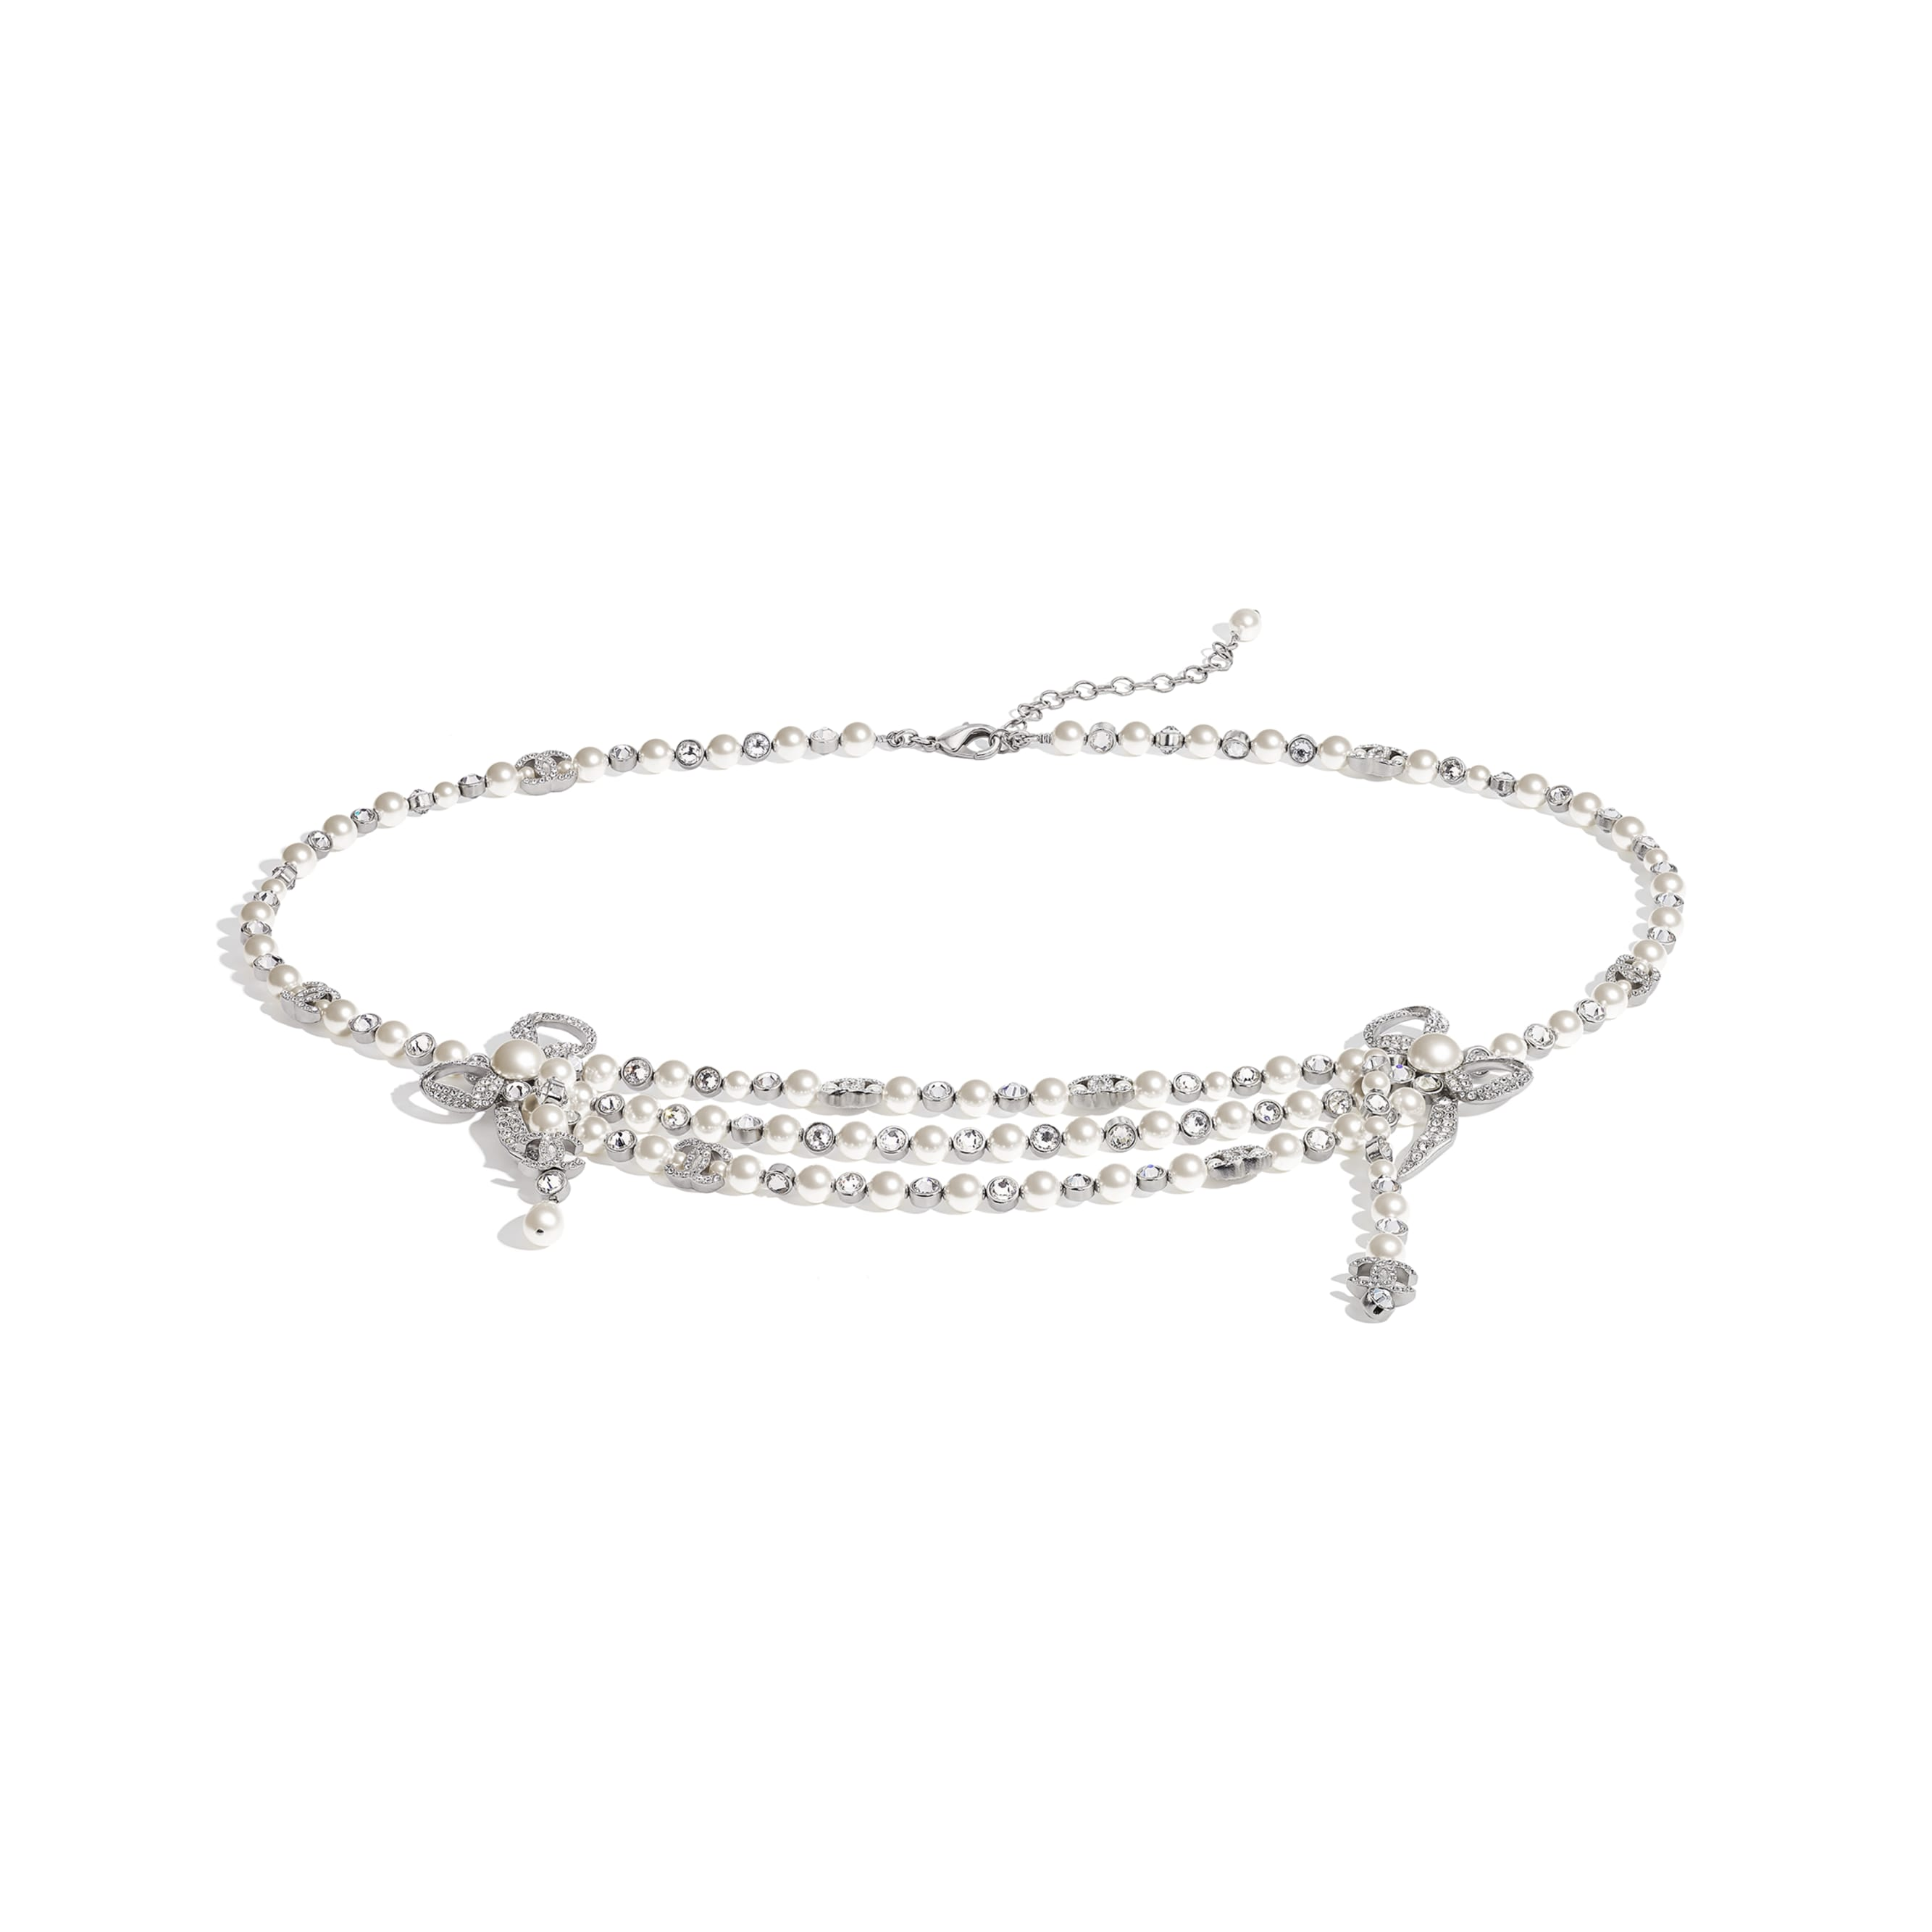 Belt - Silver, Pearly White & Crystal - Metal, Glass Pearls & Diamantés - CHANEL - Default view - see standard sized version